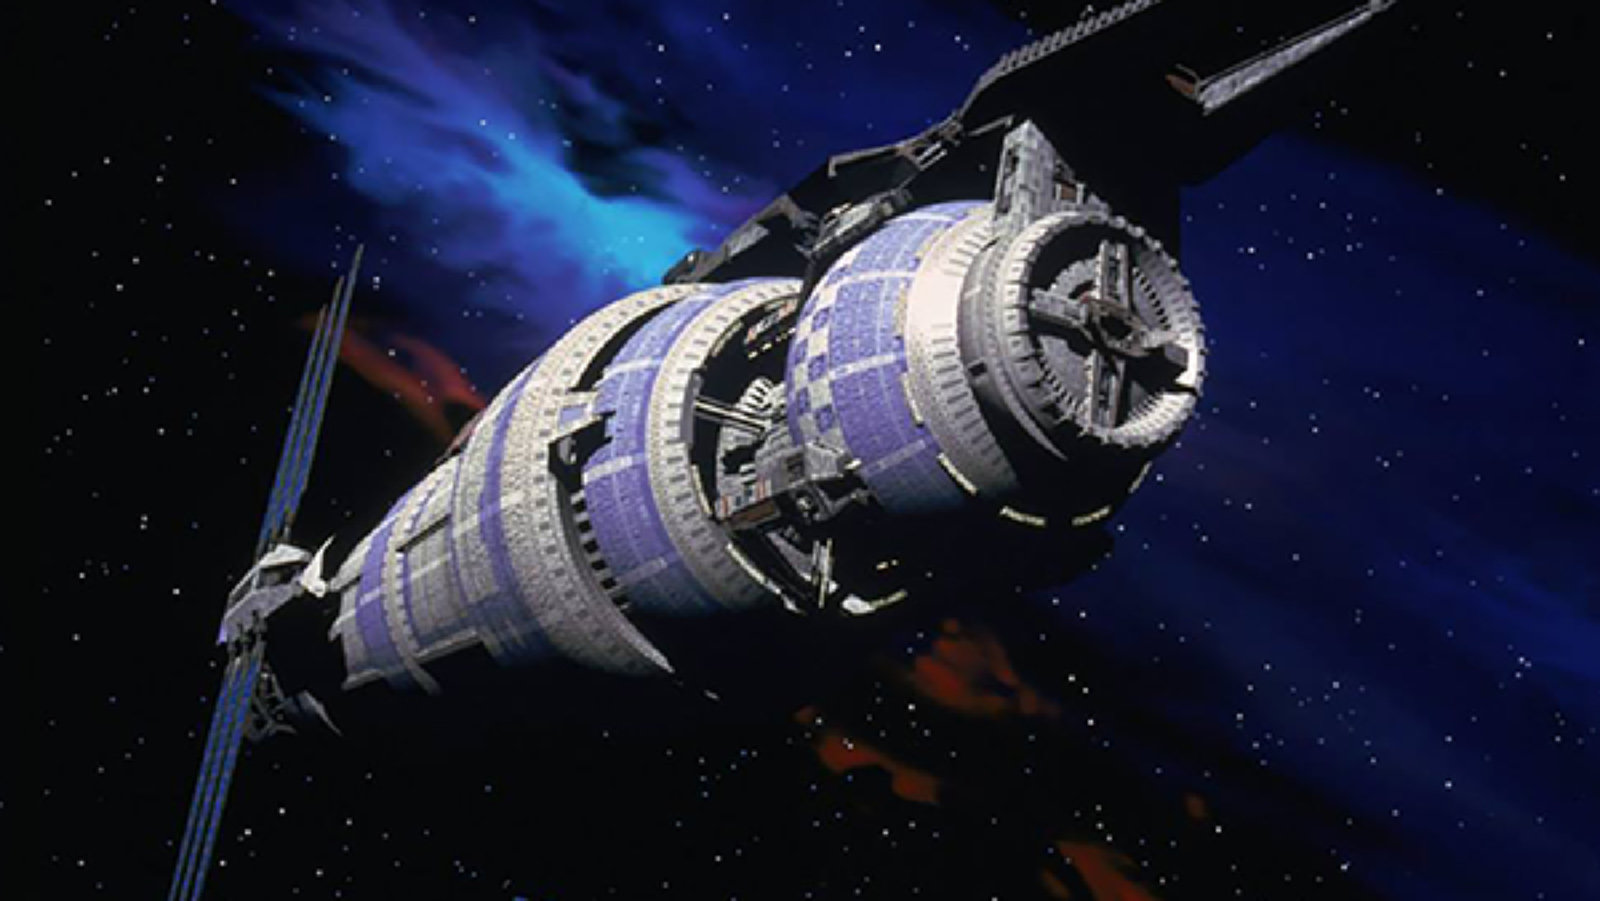 Babylon 5, the space station, stands out from the darkness of space.